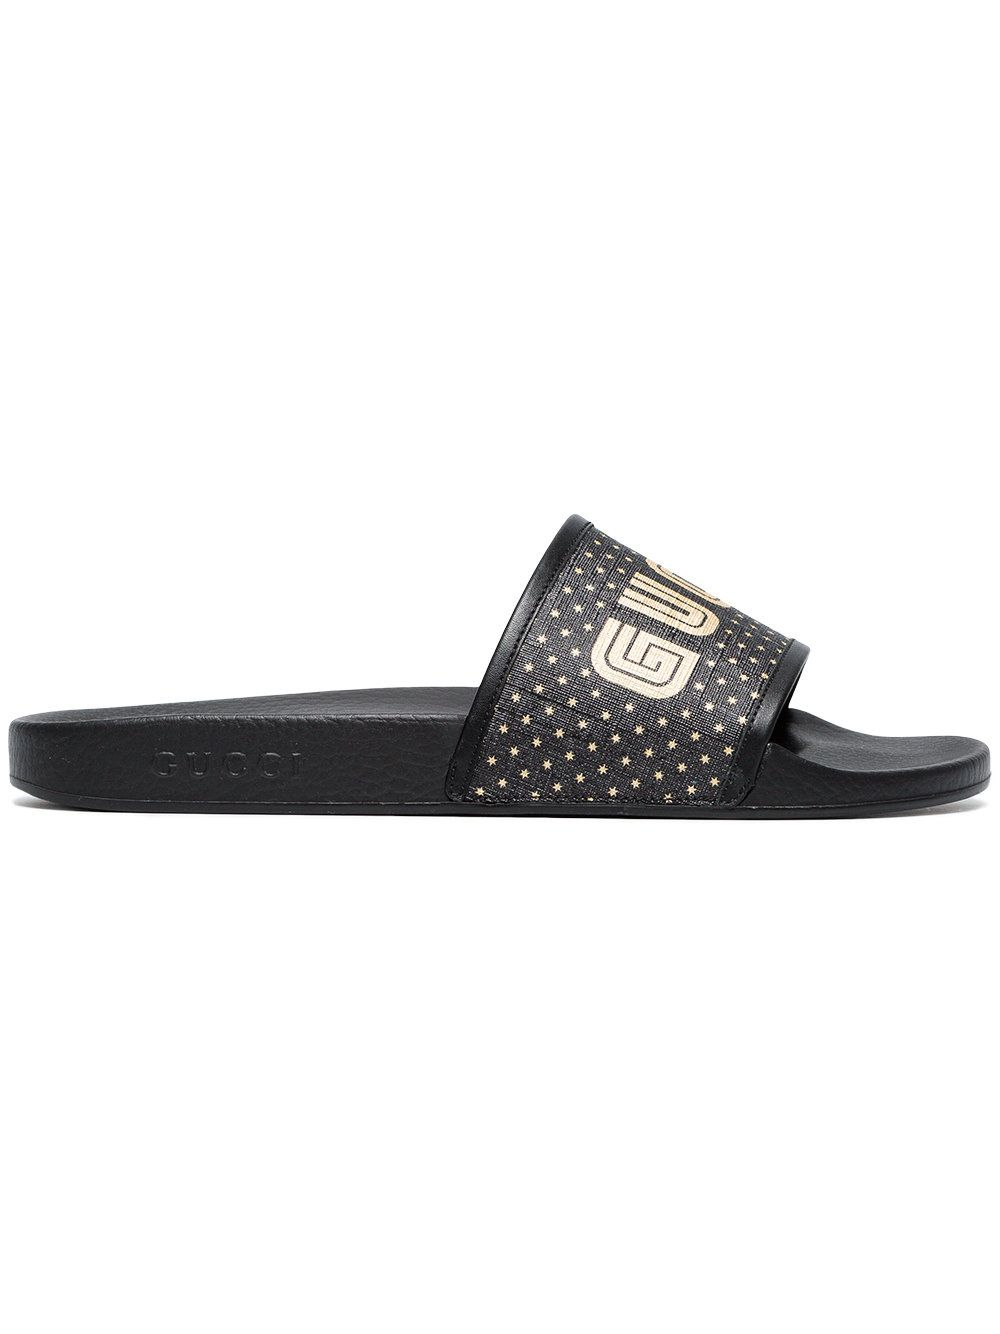 8d8fc6fce2d8 GUCCI BLACK GUCCY SLIDES WITH STARS. #gucci #shoes # | Gucci Men ...